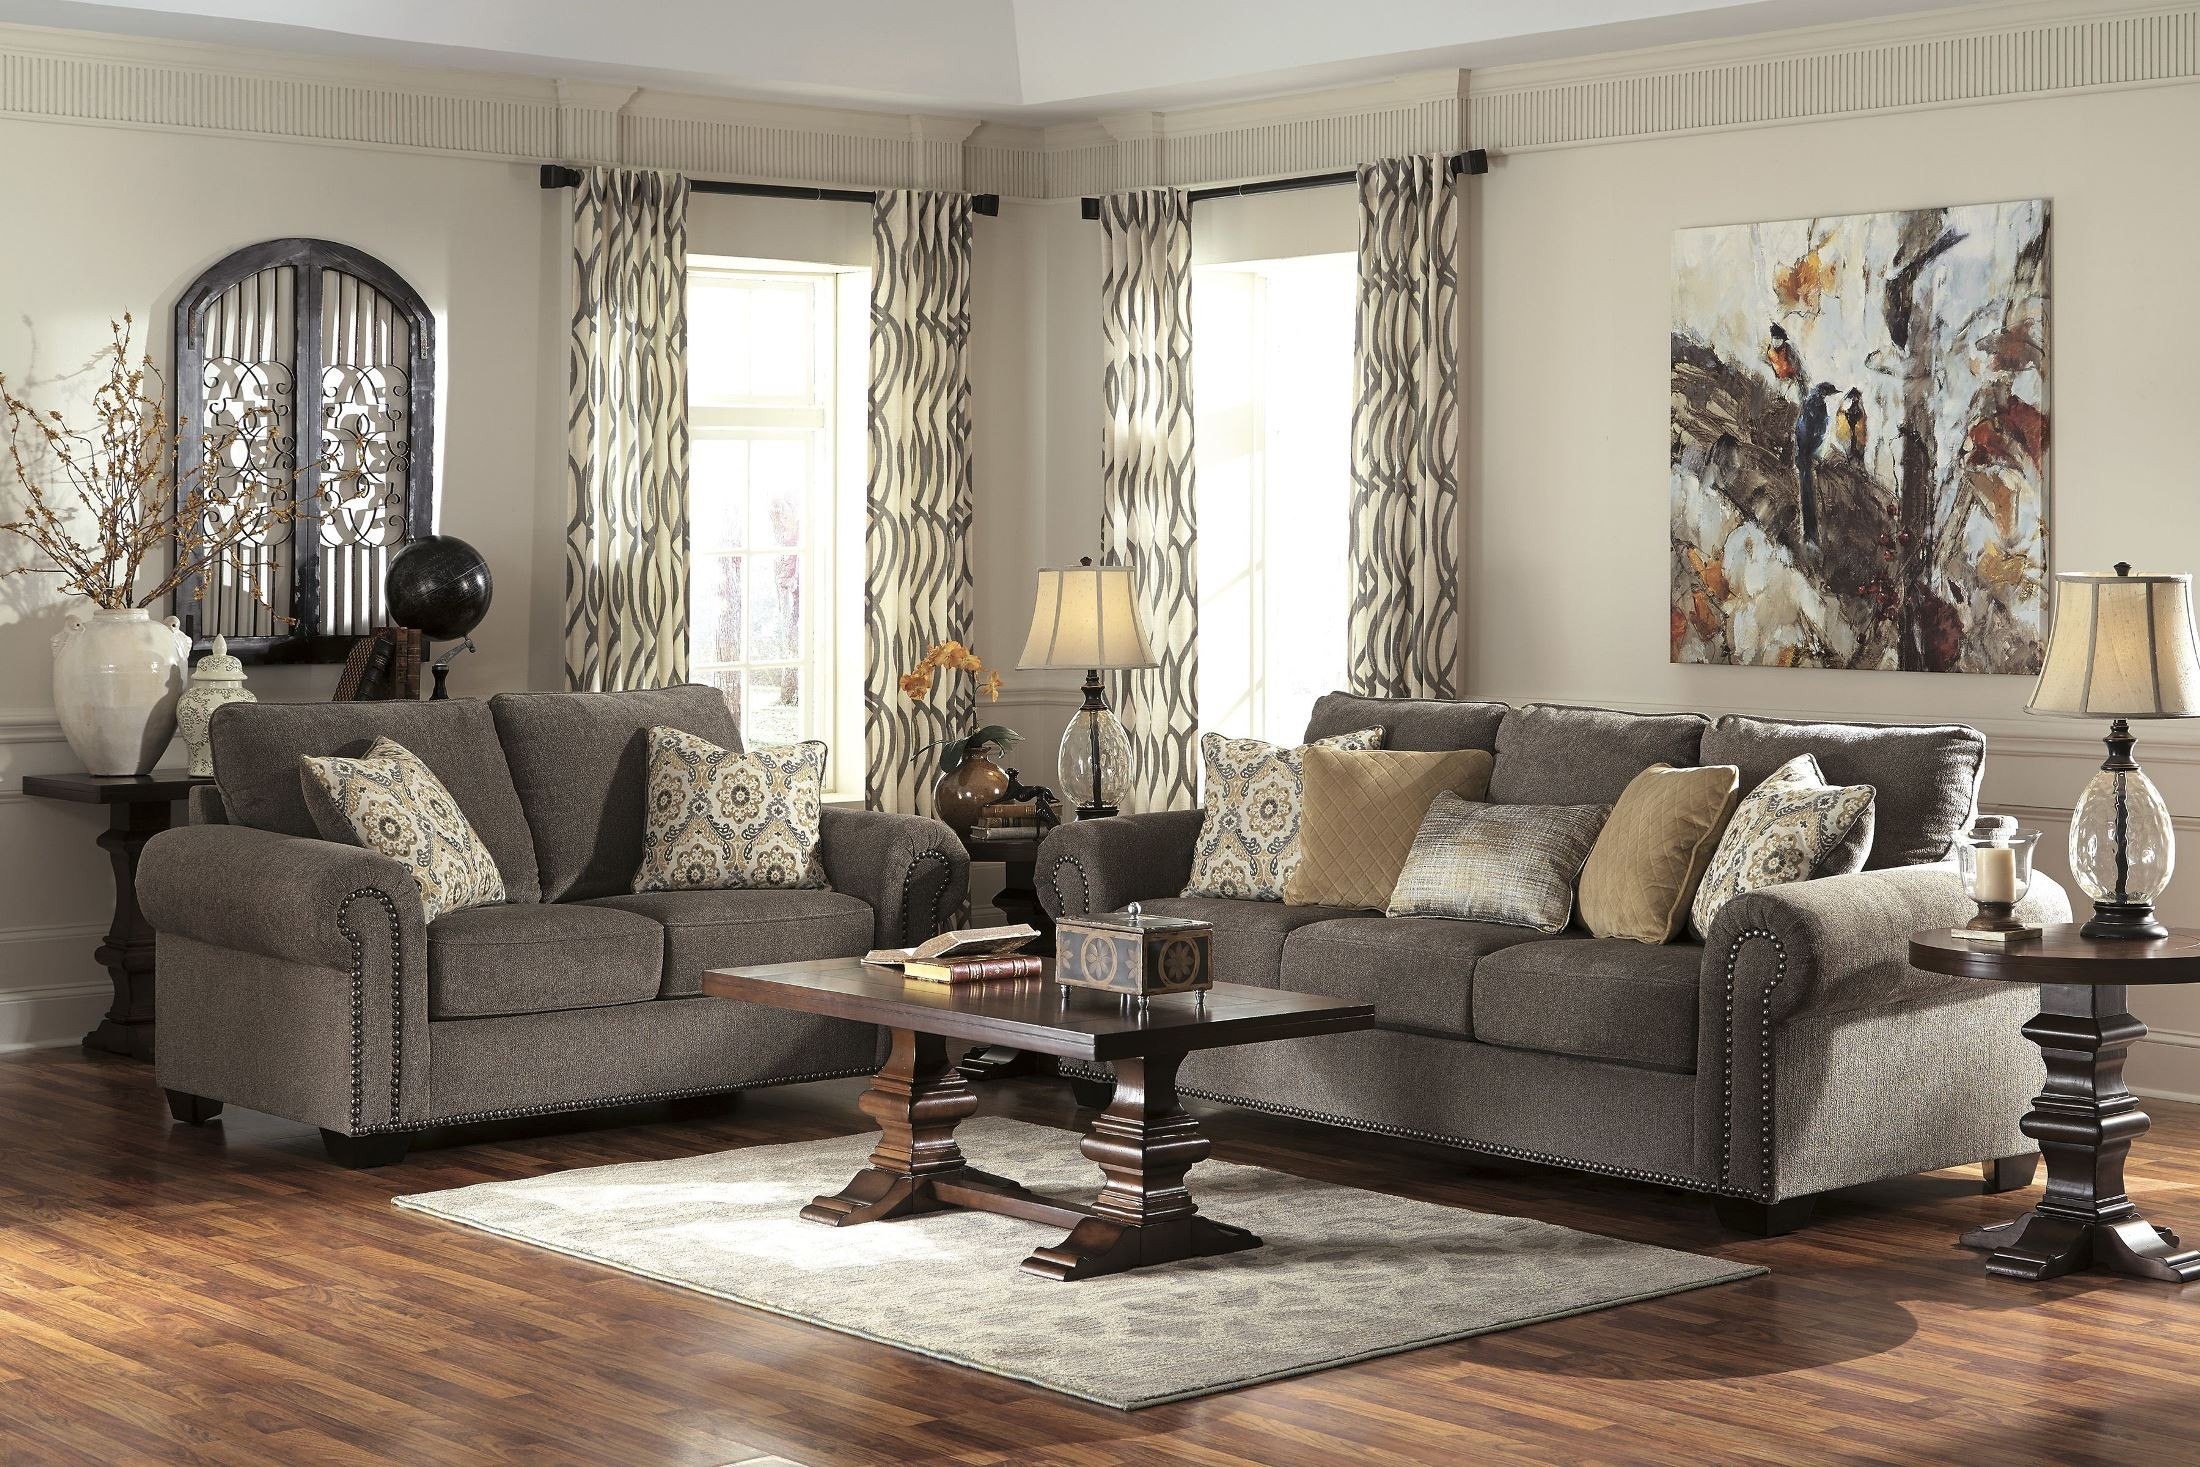 Emelen Alloy Sofa Including Accent Pillows from Ashley